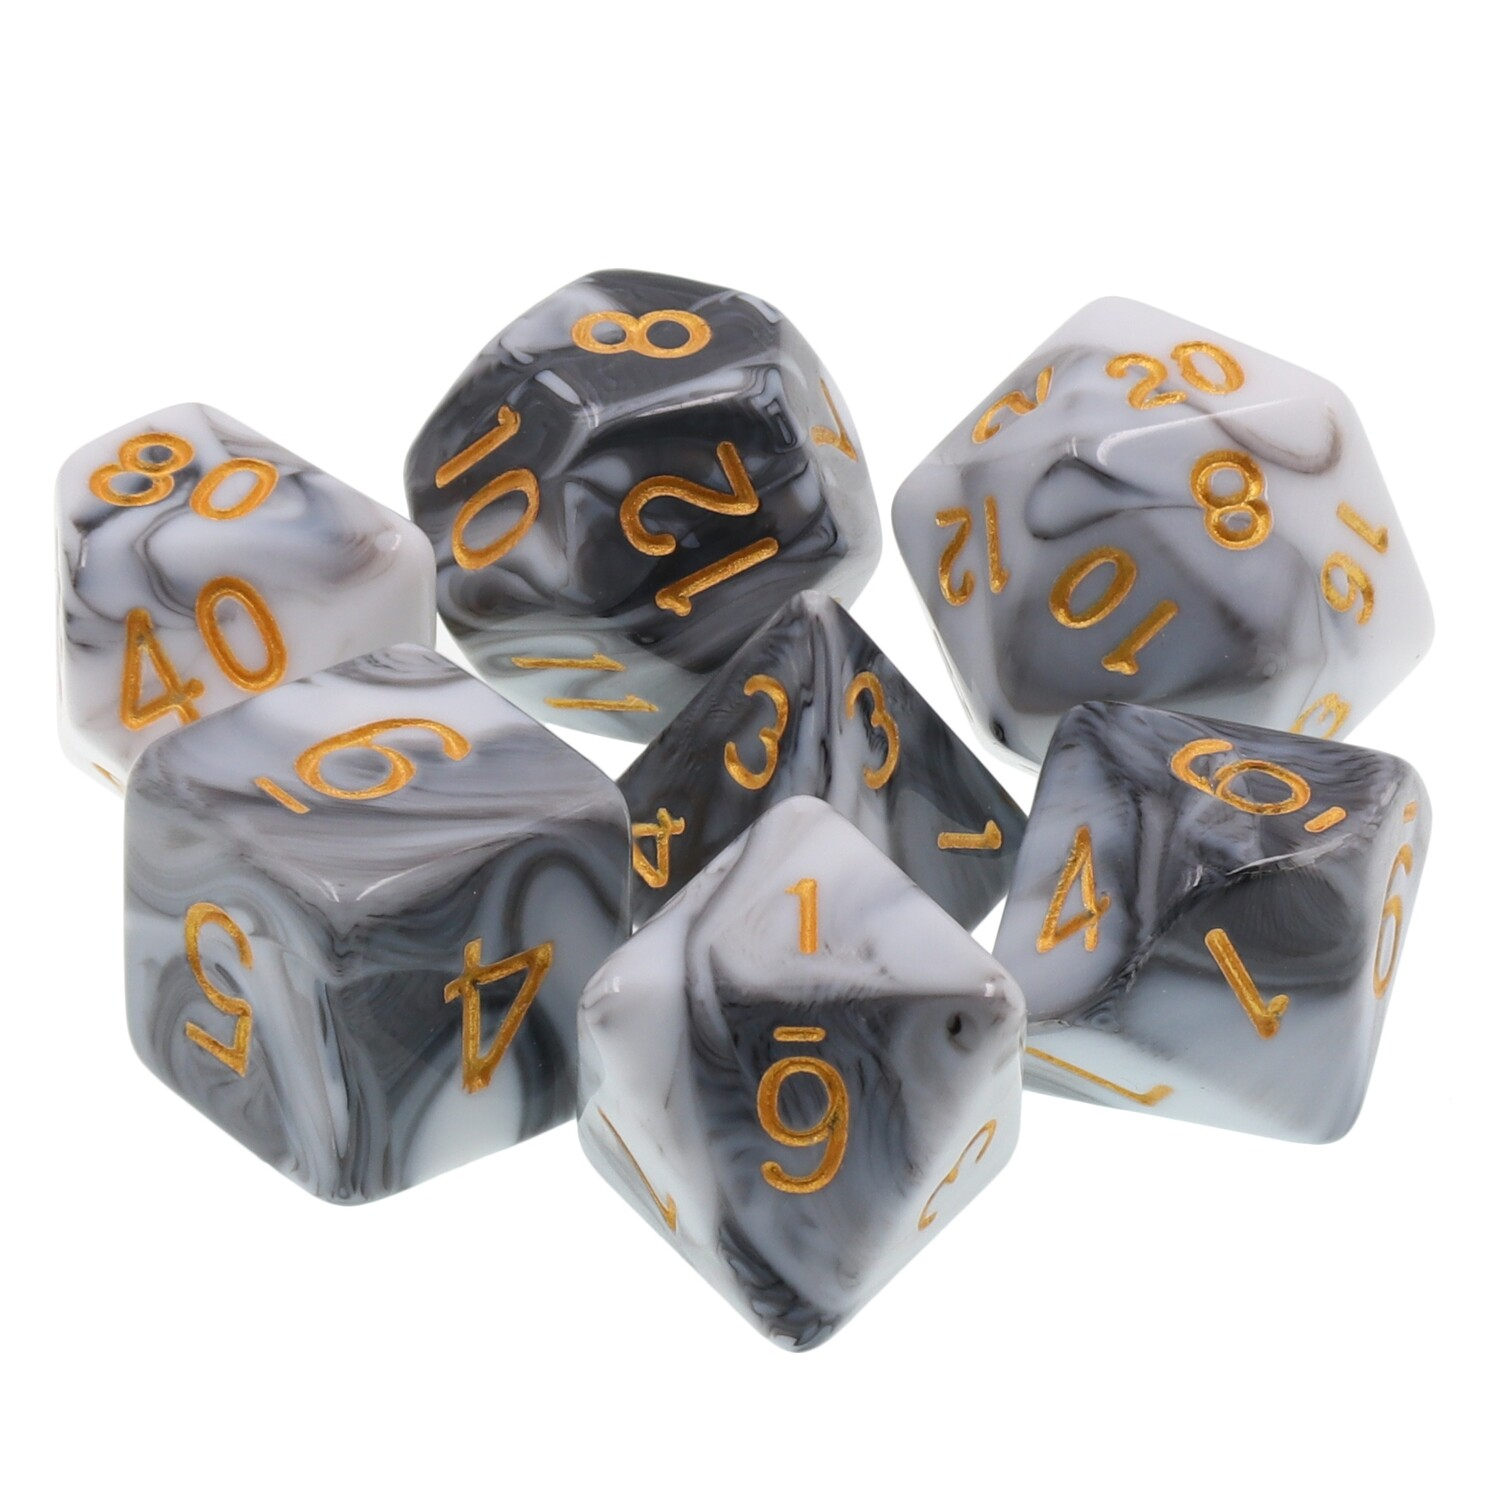 7 Die Set: Darkened Granite